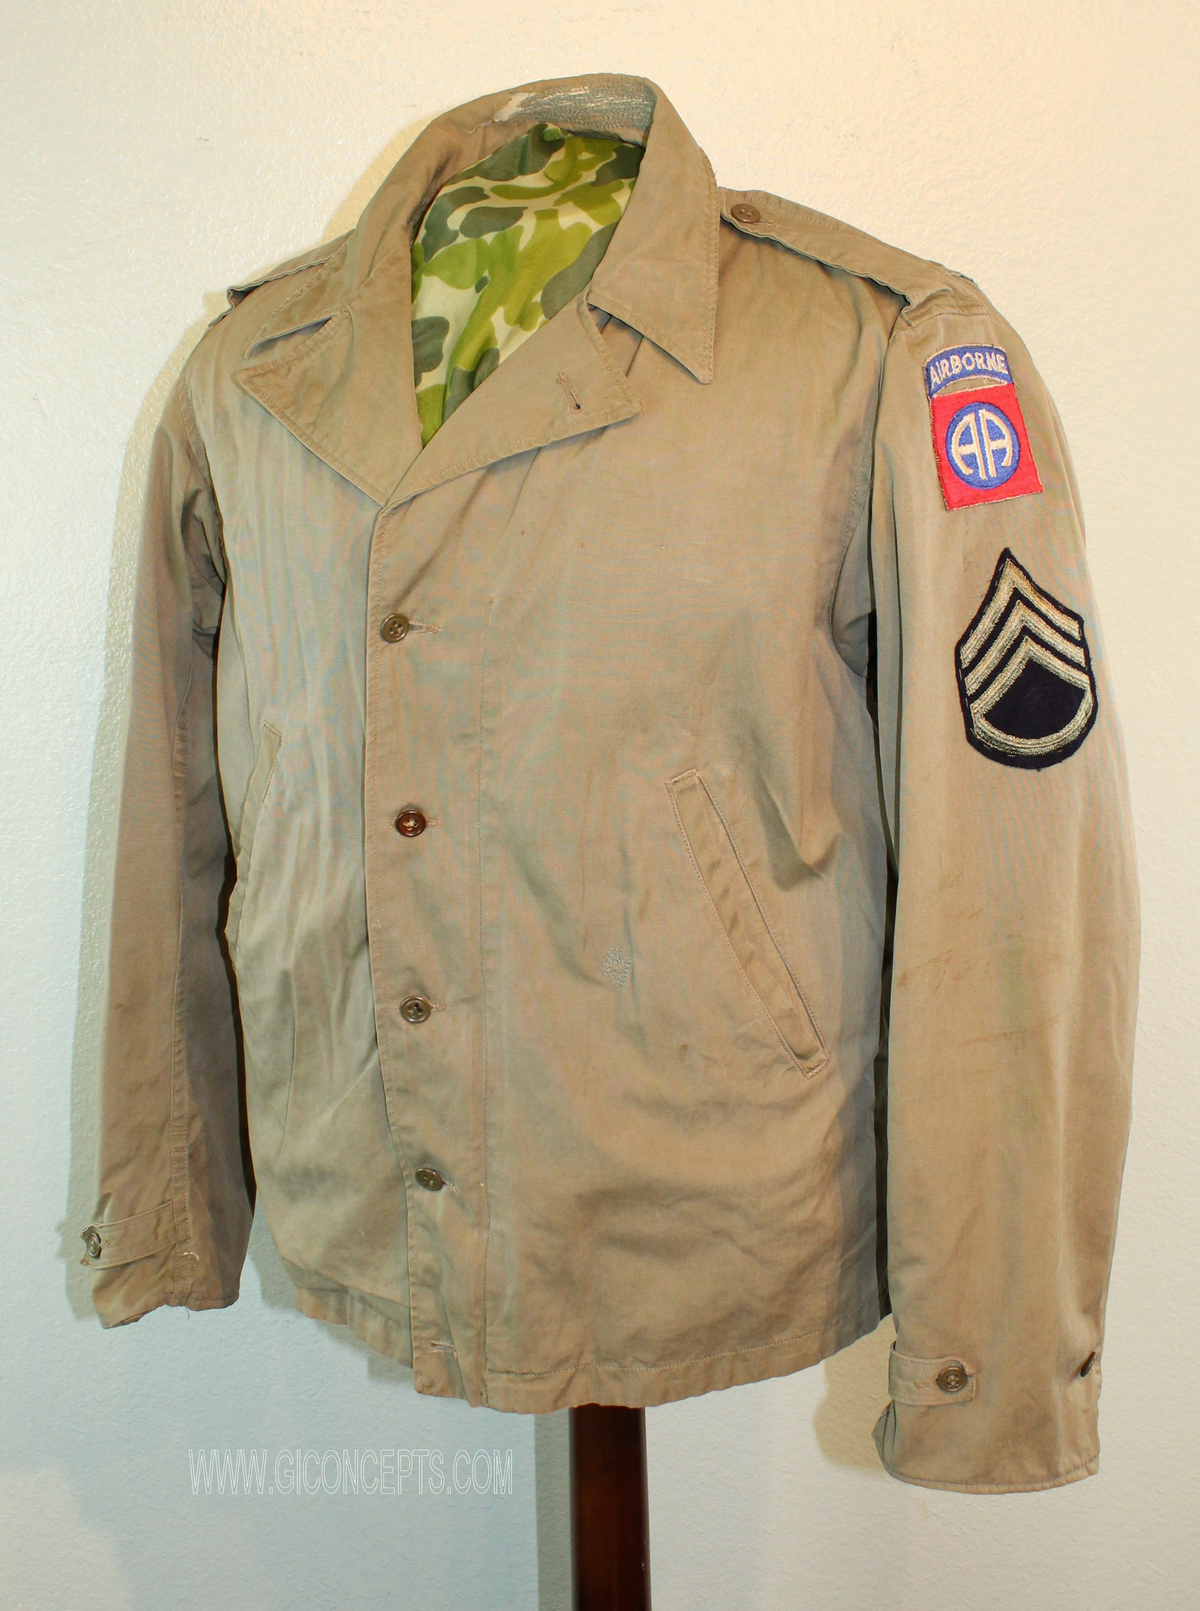 82nd Airborne Field Jacket